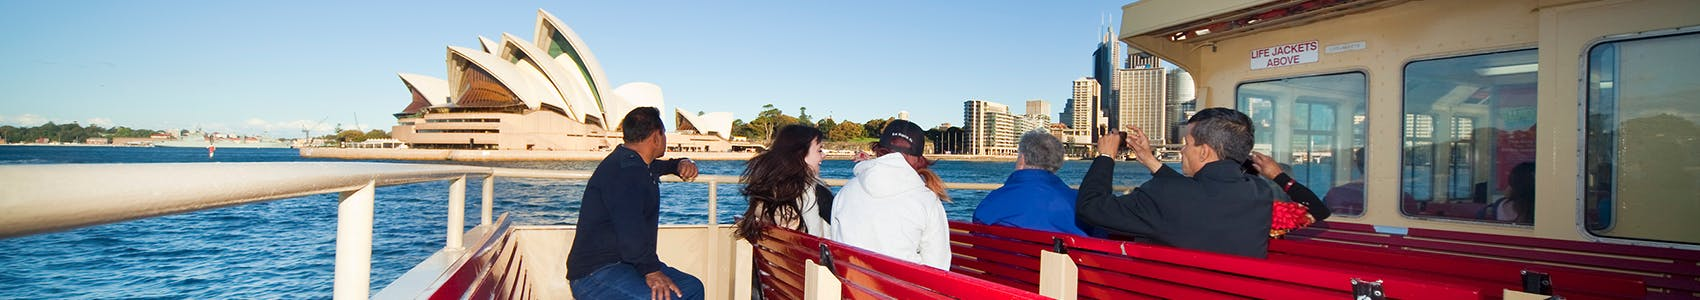 Image a passengers on a ferry with Sydney's skyline in the background